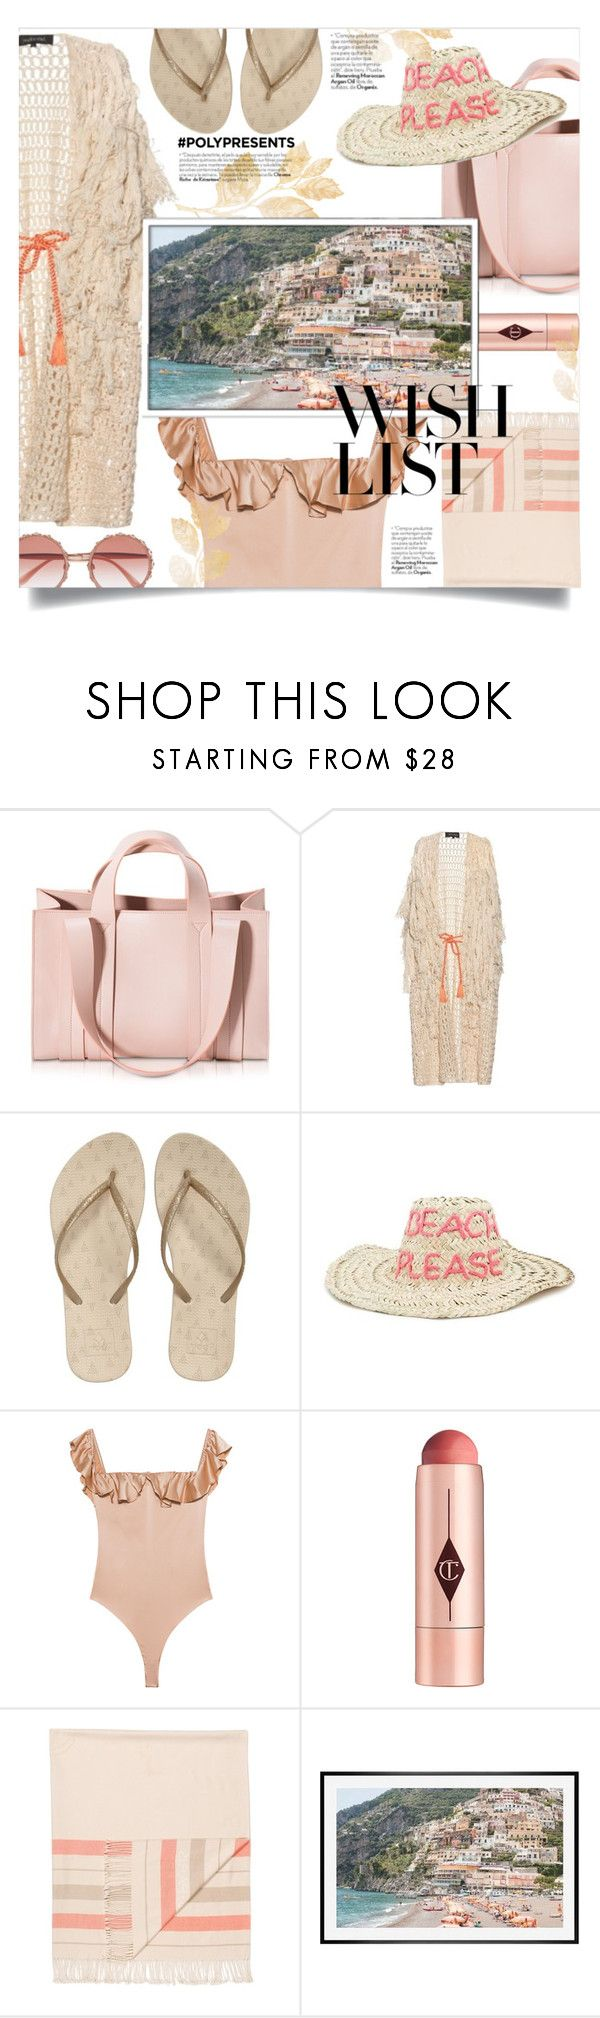 """#PolyPresents: Wish List"" by devaanggraenii ❤ liked on Polyvore featuring Corto Moltedo, Tabula Rasa, Reef, Forever 21, For Love & Lemons, Charlotte Tilbury, Hermès, Pottery Barn, Dolce&Gabbana and contestentry"